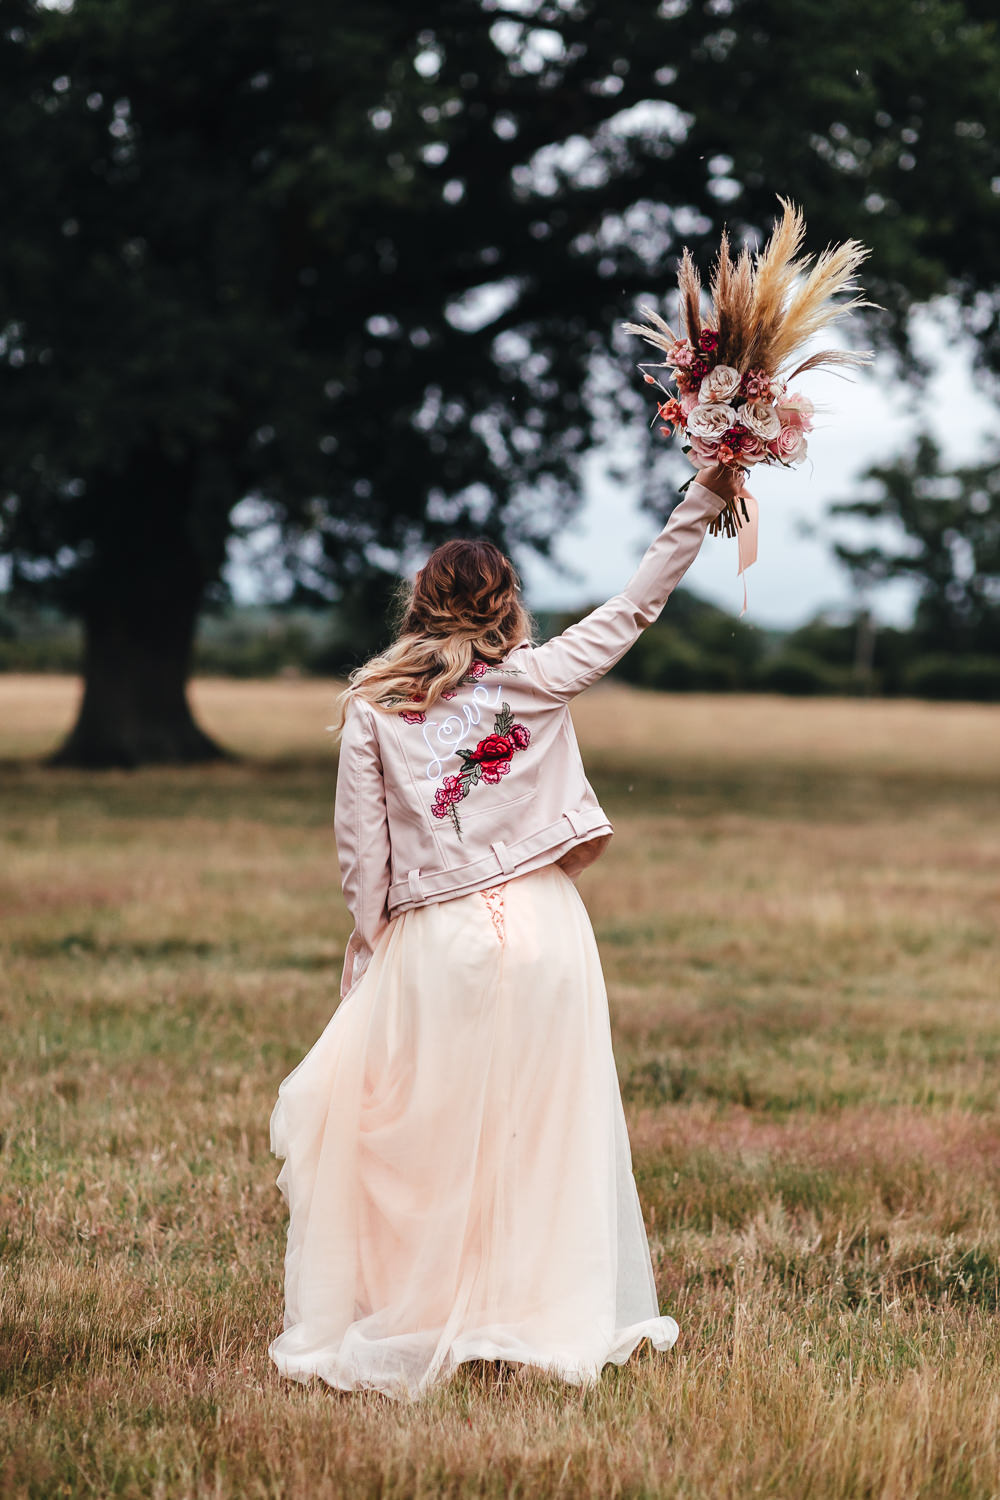 Leather Jacket Bride Bridal Painted Bohemian Elopement Kirsty Mackenzie Photography